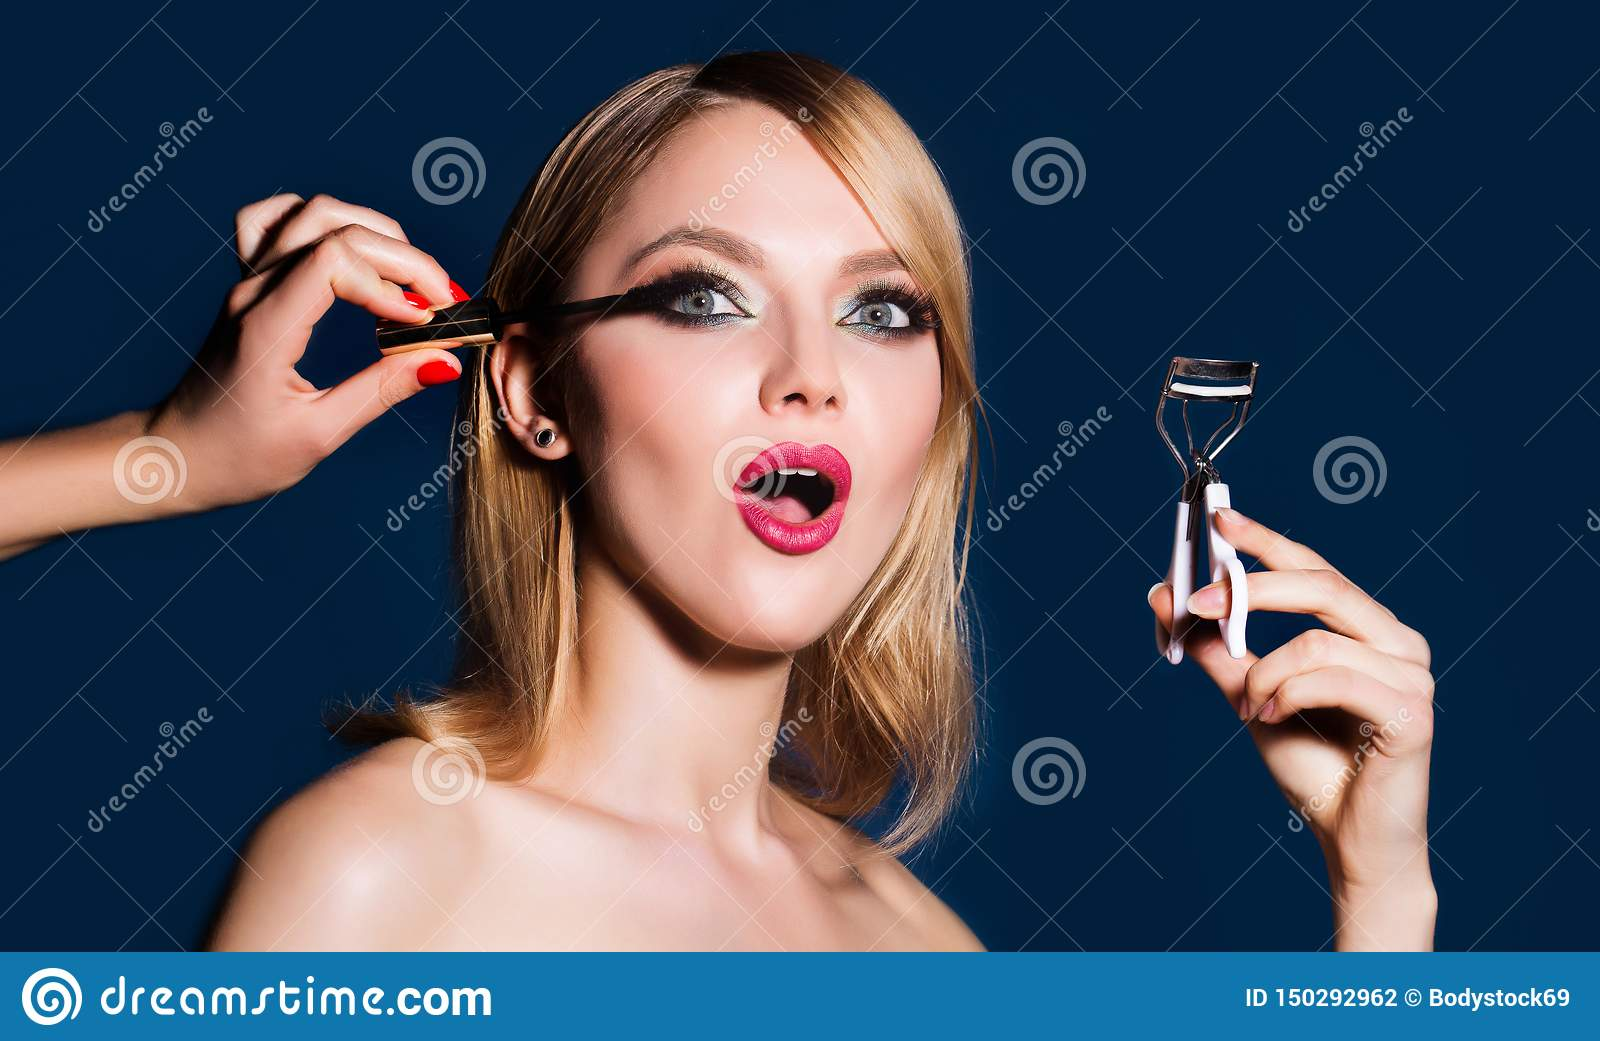 Makeup artist applies mascara to the eyelashes. Bright red lips makeup, perfect clean skin, eye shadows. Woman doing her